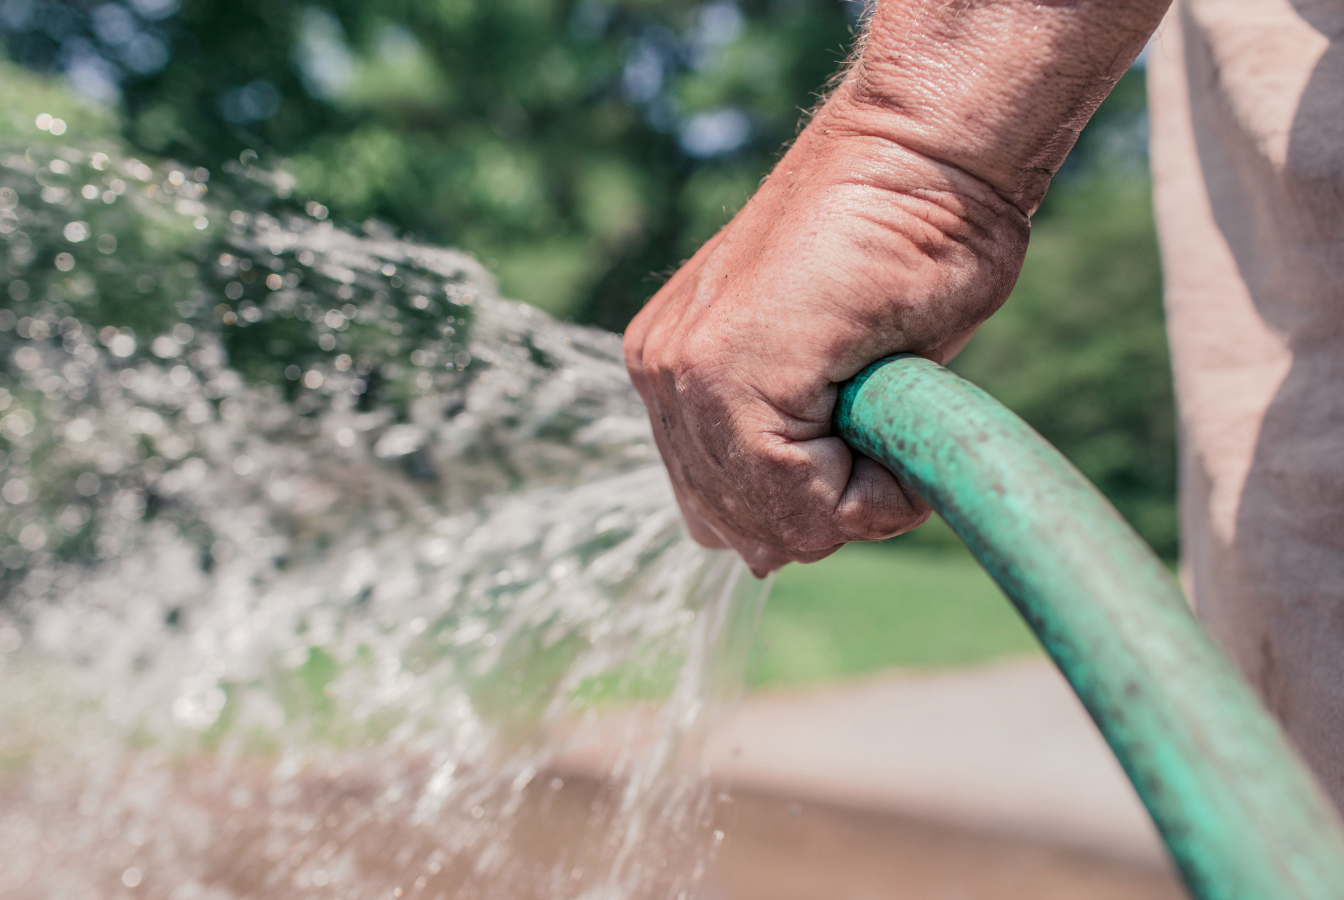 Man holding hose spraying water on his lawn